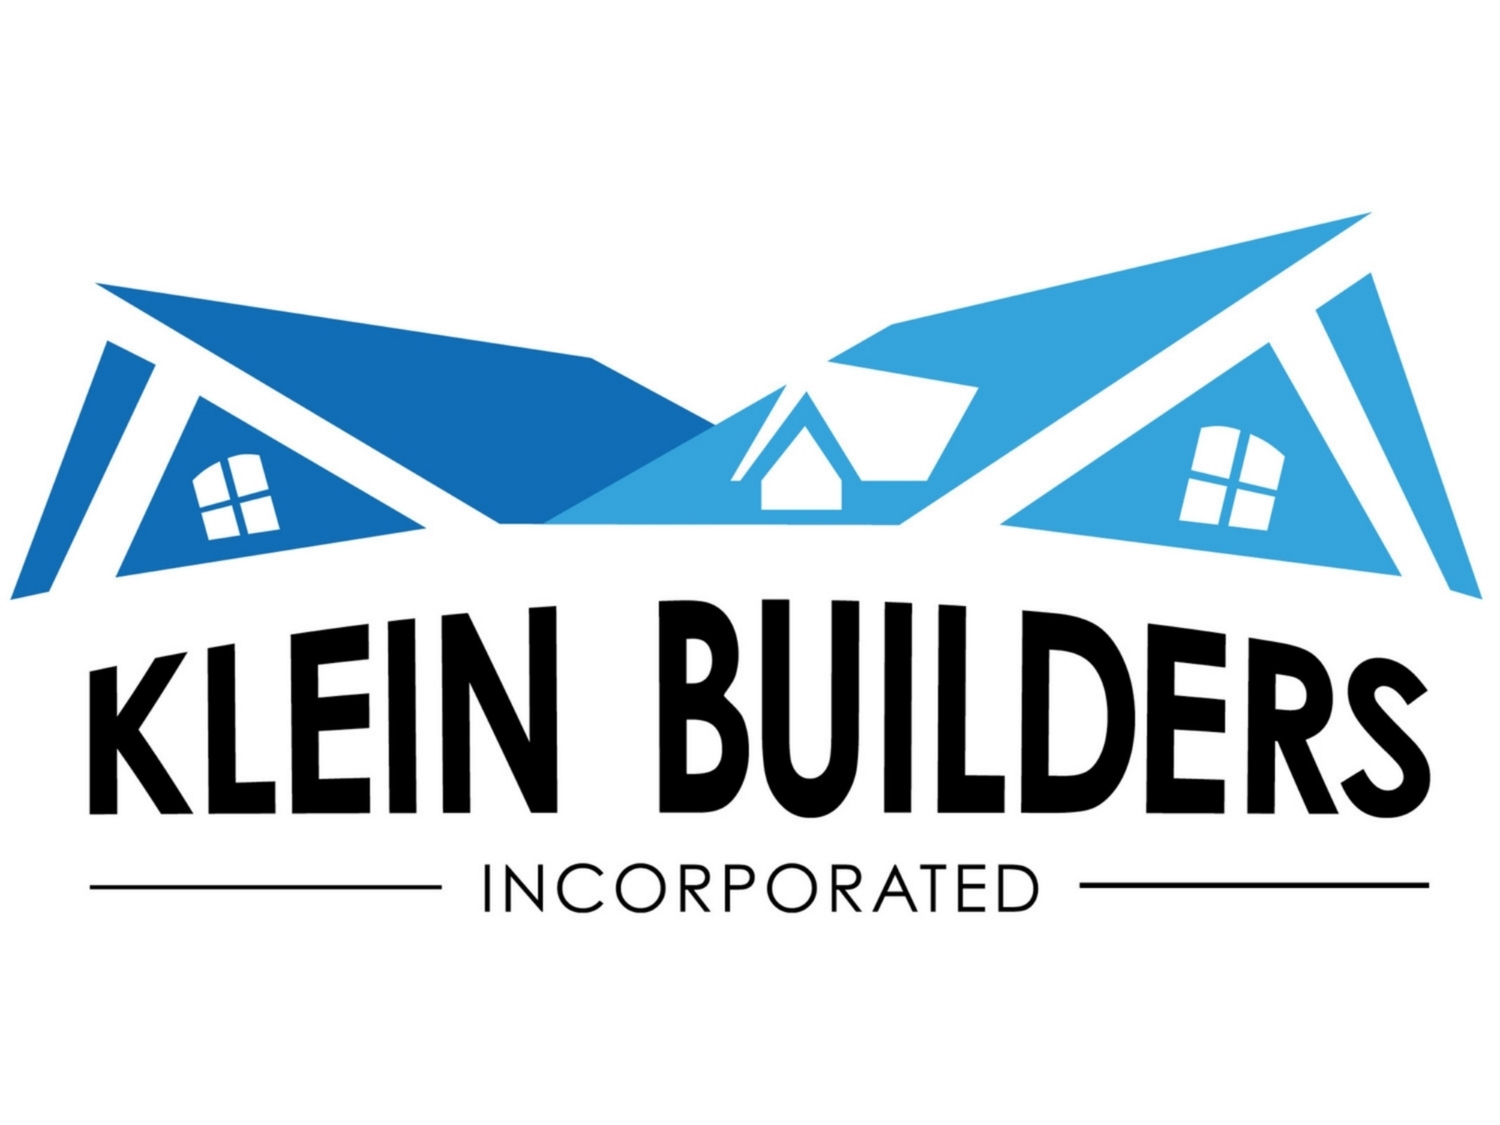 Klein Builders Inc.